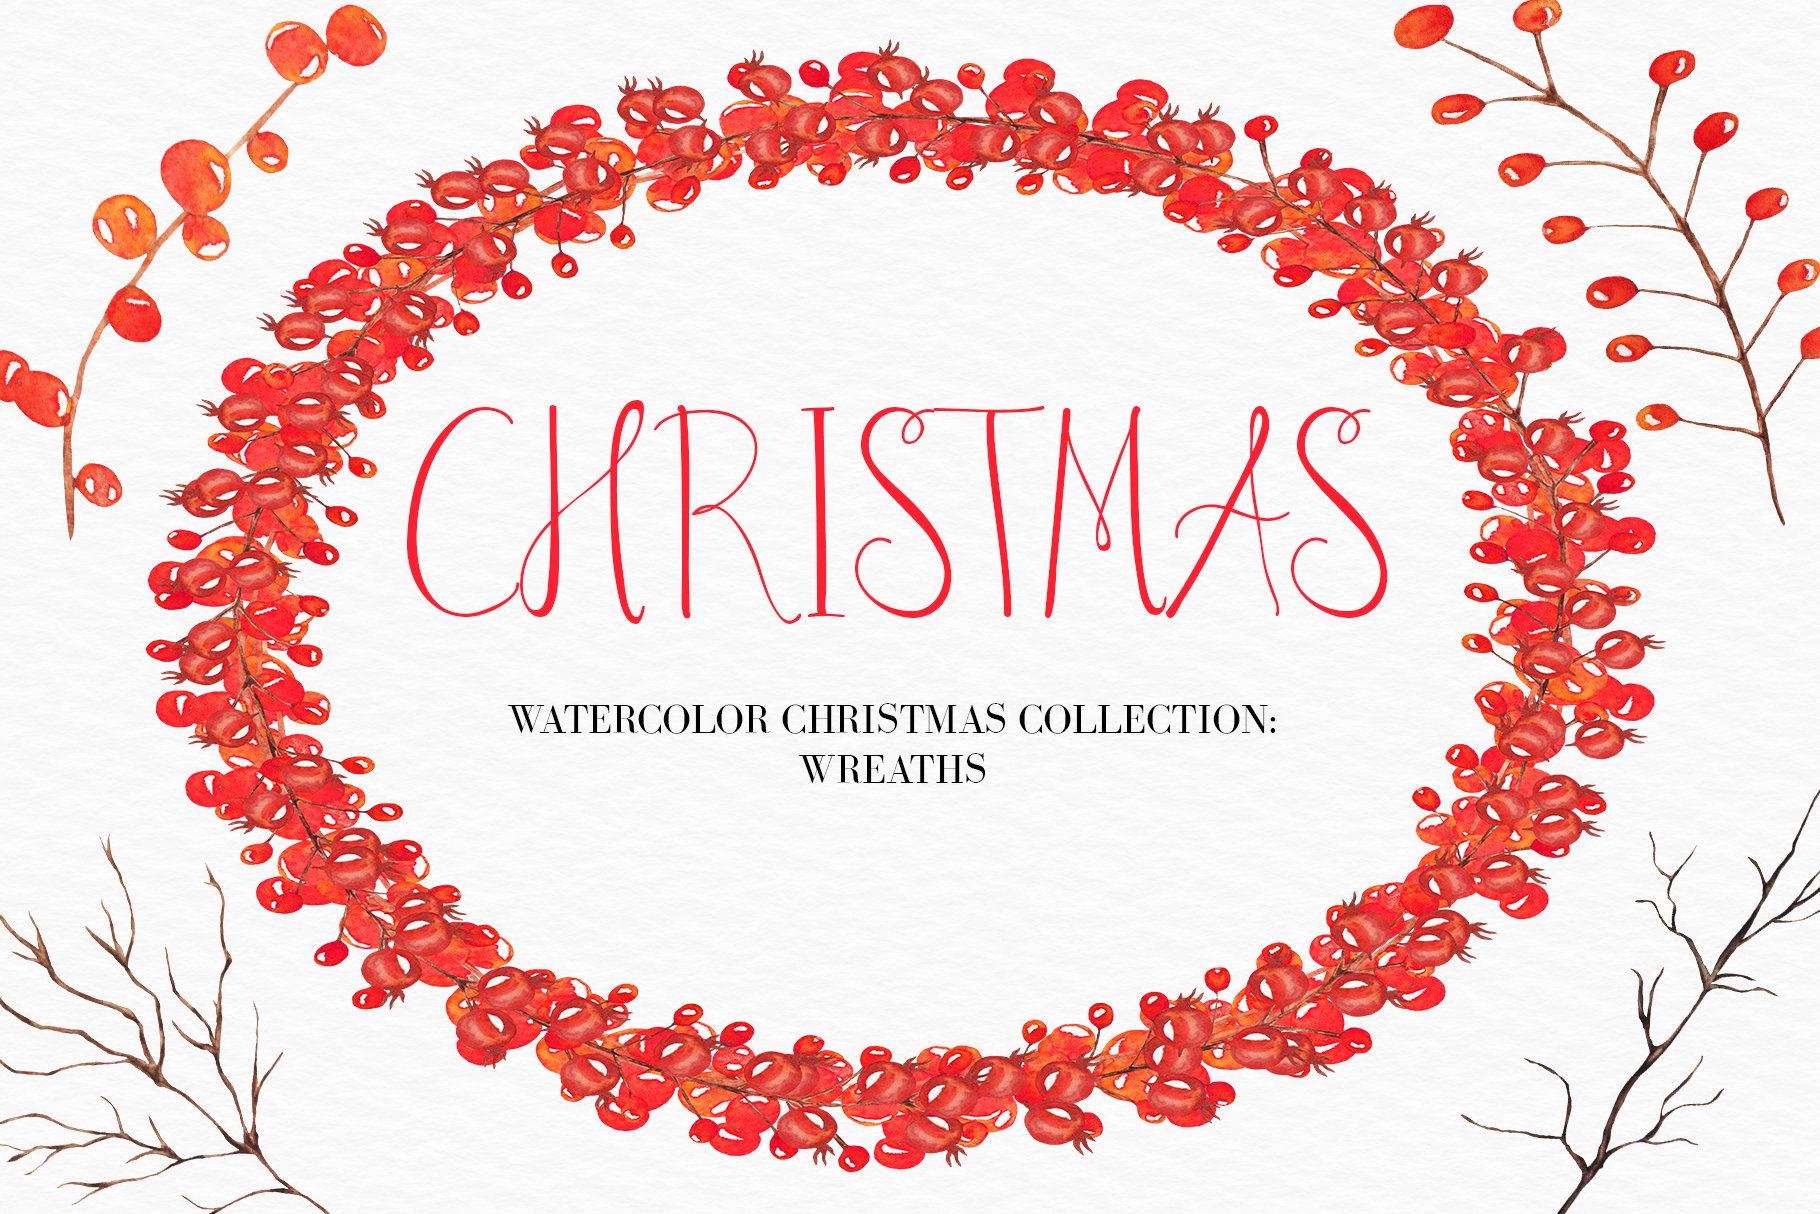 Wreath pictures clipart graphic free stock Watercolor Christmas Wreath Clipart graphic free stock